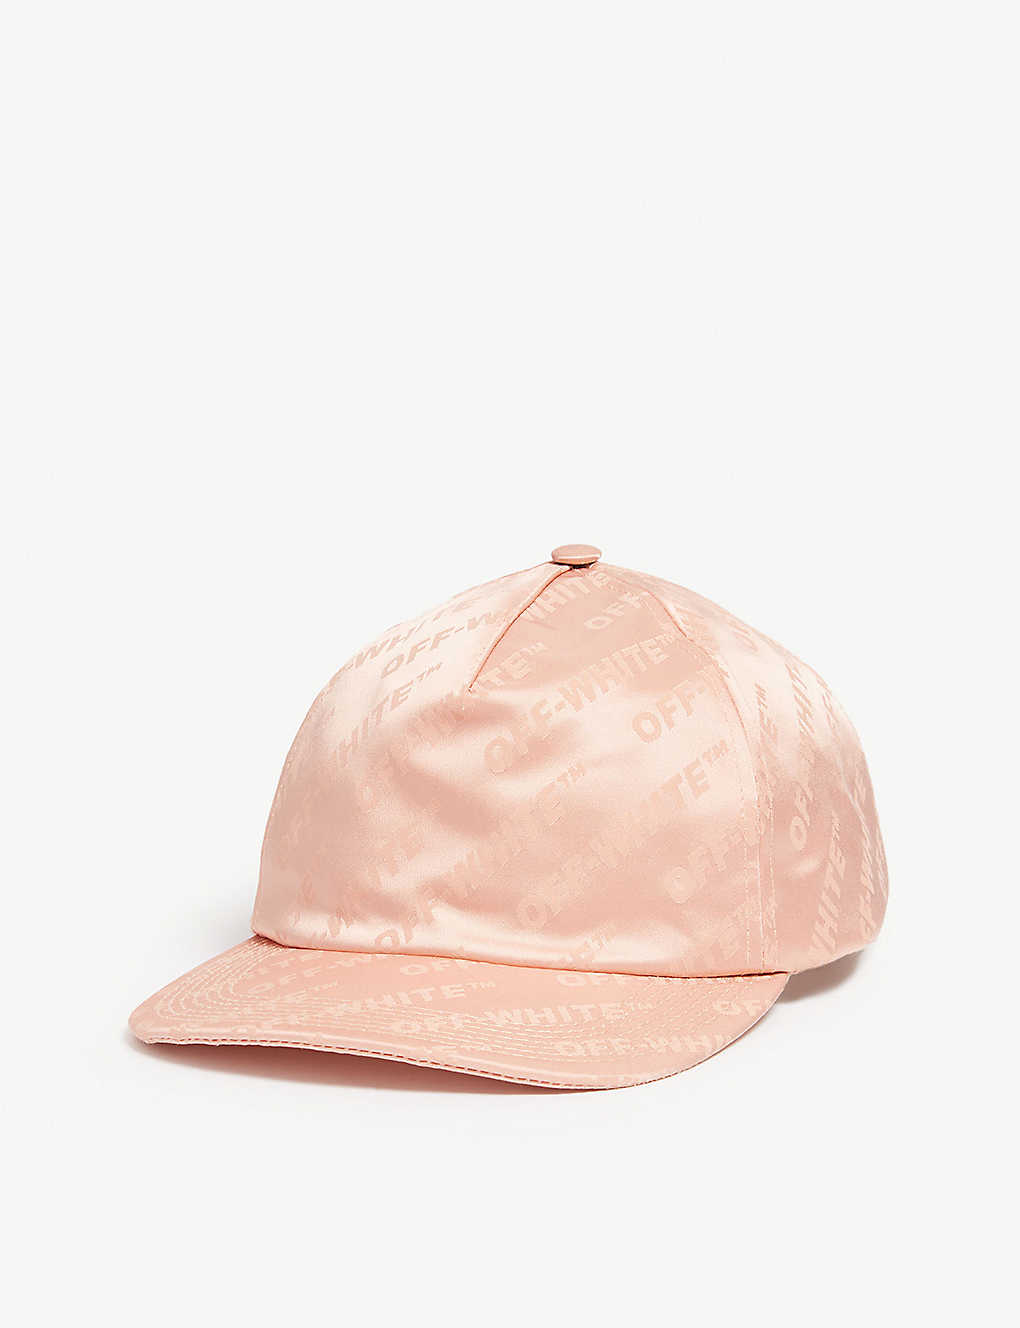 452ee8a0da8 OFF-WHITE C O VIRGIL ABLOH - Branded cap